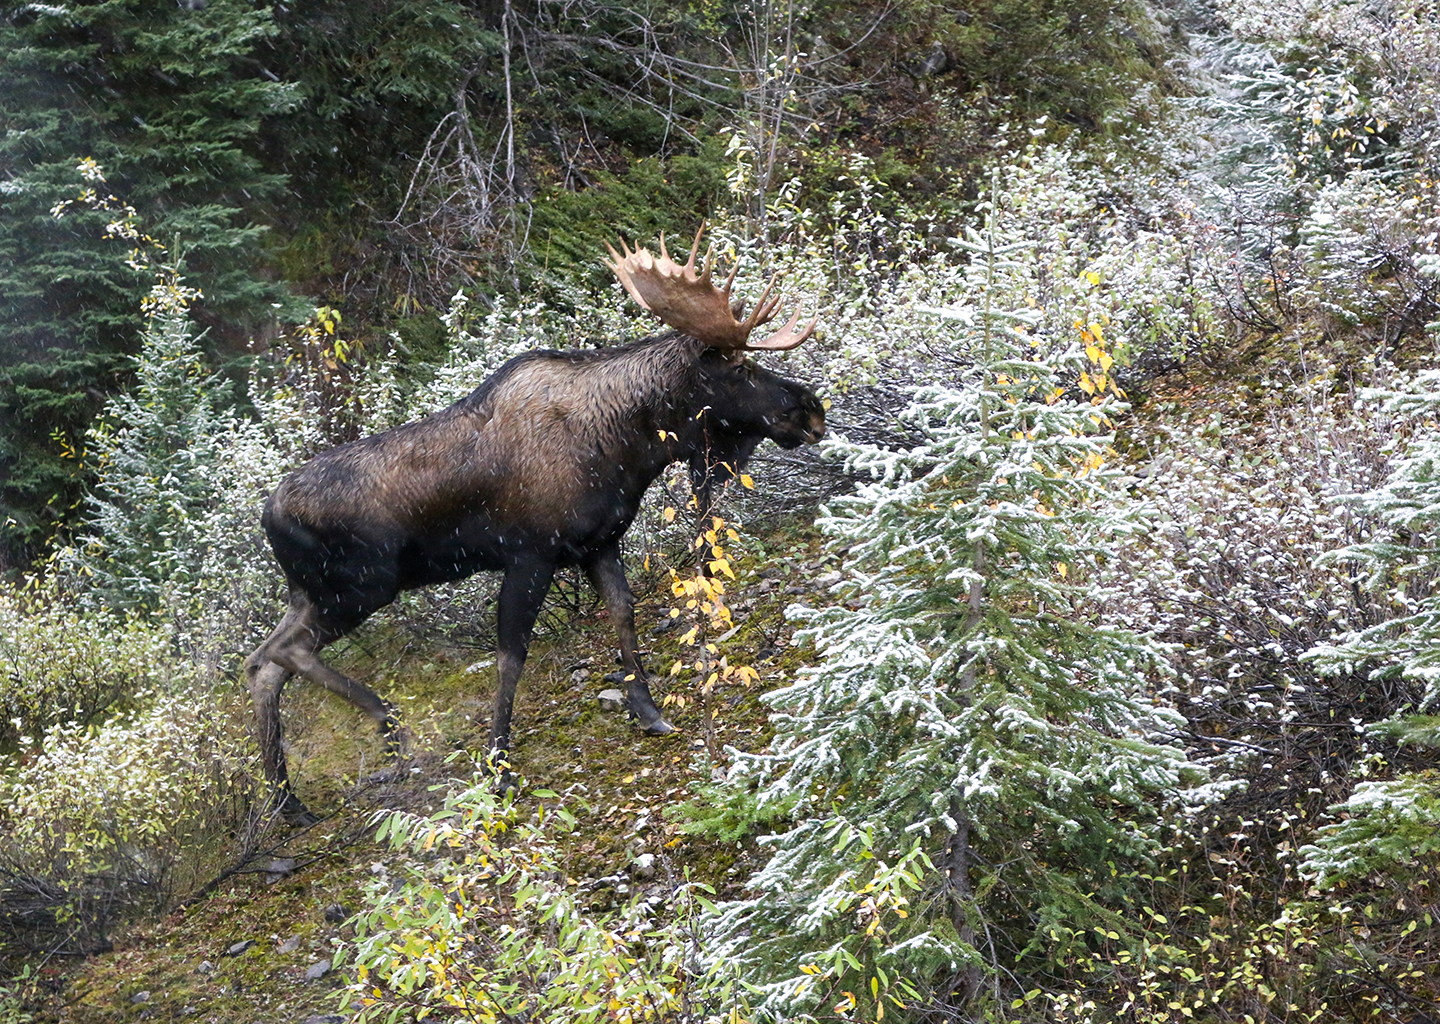 bull moose hiking up utah mountain side with wild flowers